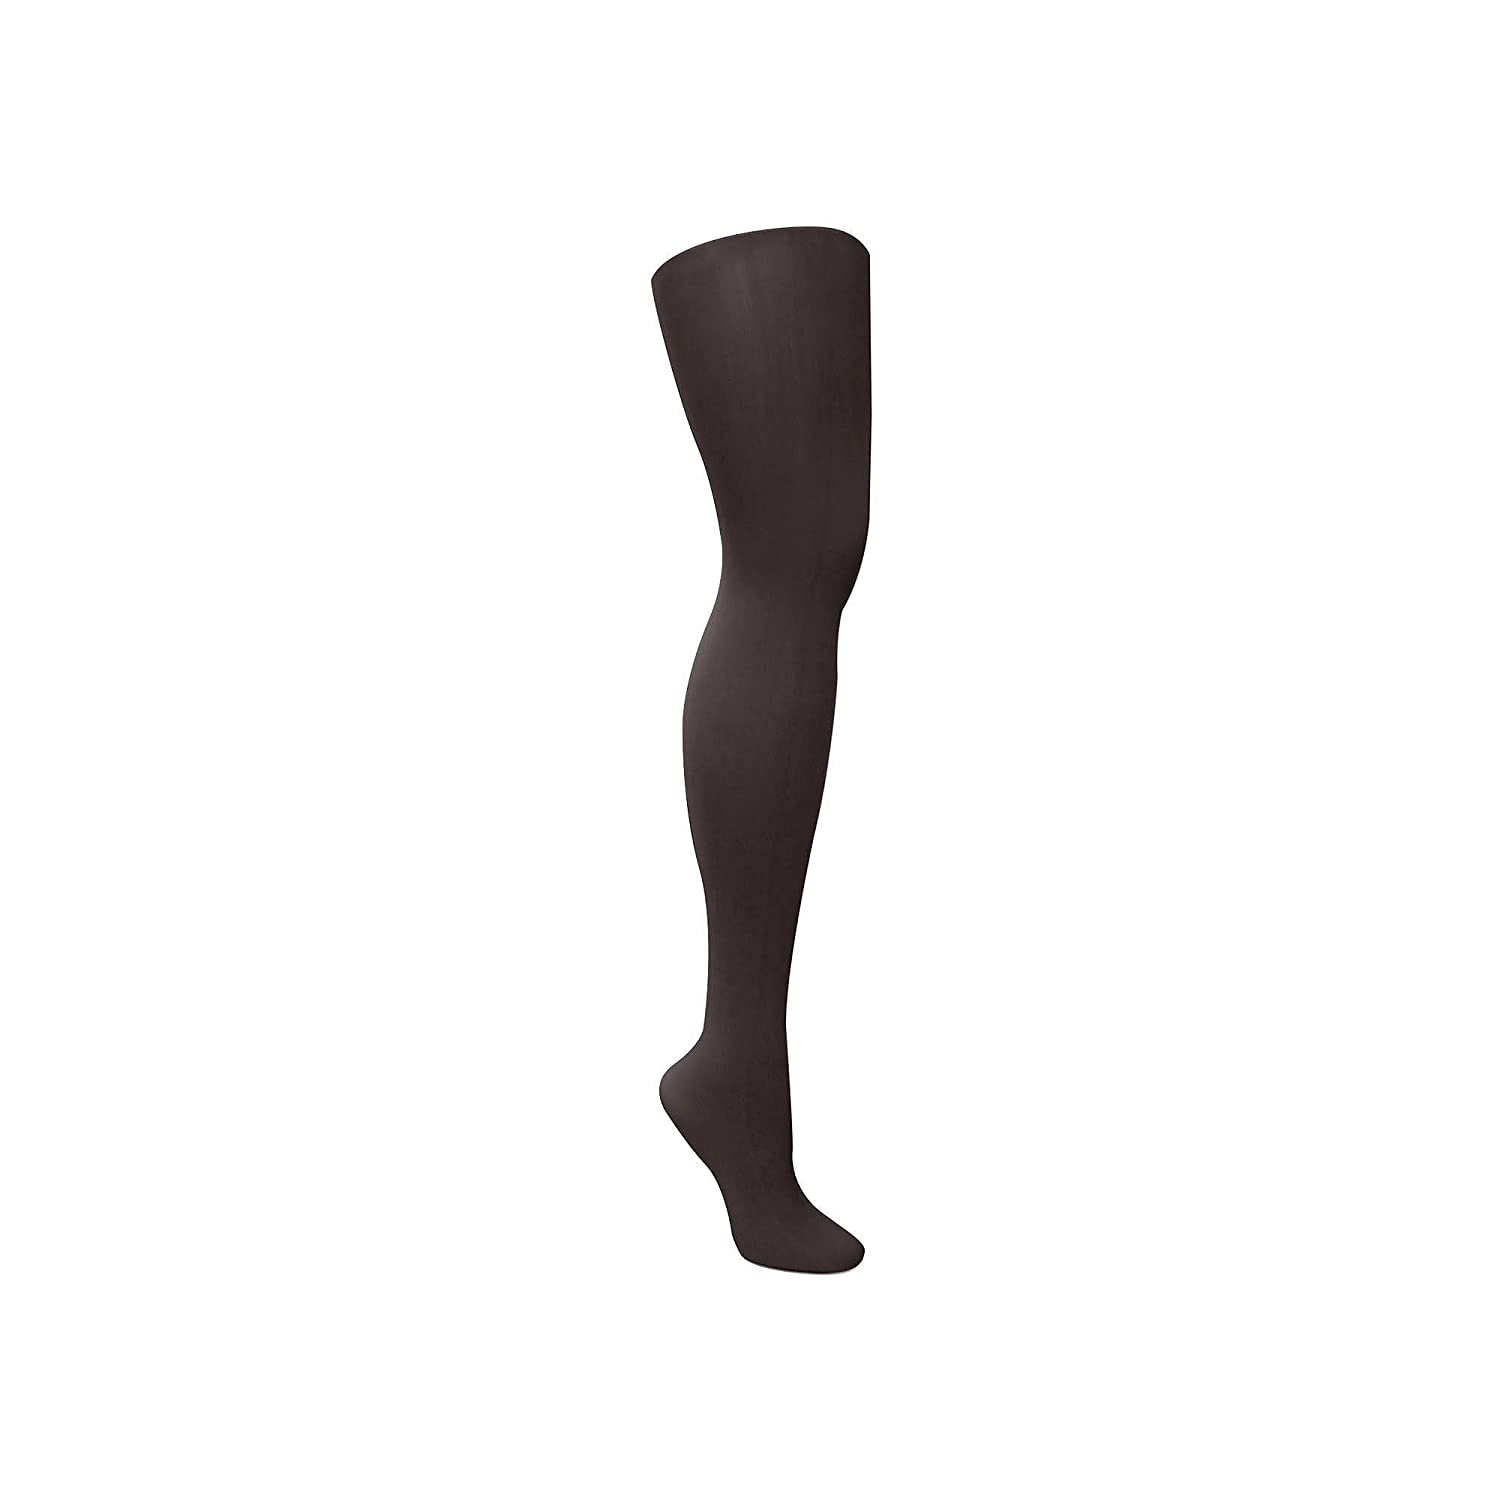 3f70f0db2a9ea MUK LUKS - Microfiber Herringbone Tights at Amazon Women's Clothing store:  Maternity Hosiery